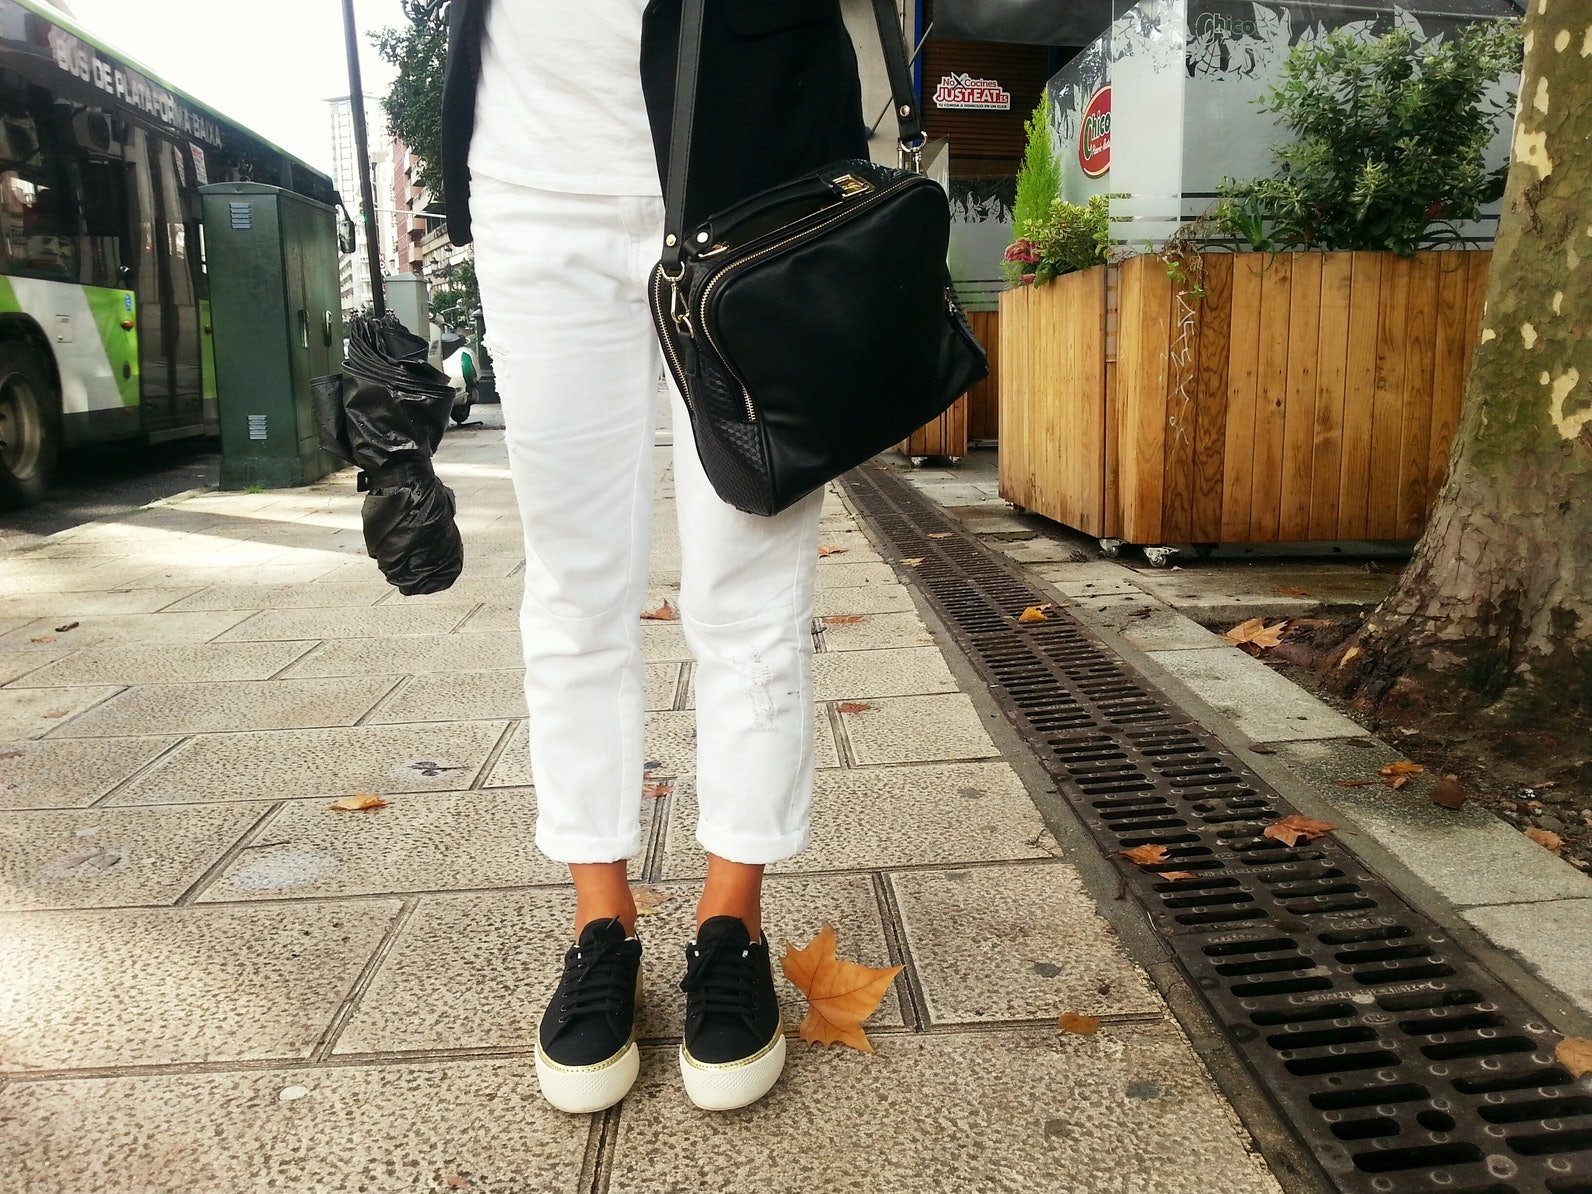 8484f0e36ddc How To Protect Your Bag From Rain So A Sudden Storm Never Has To Ruin Your  Day